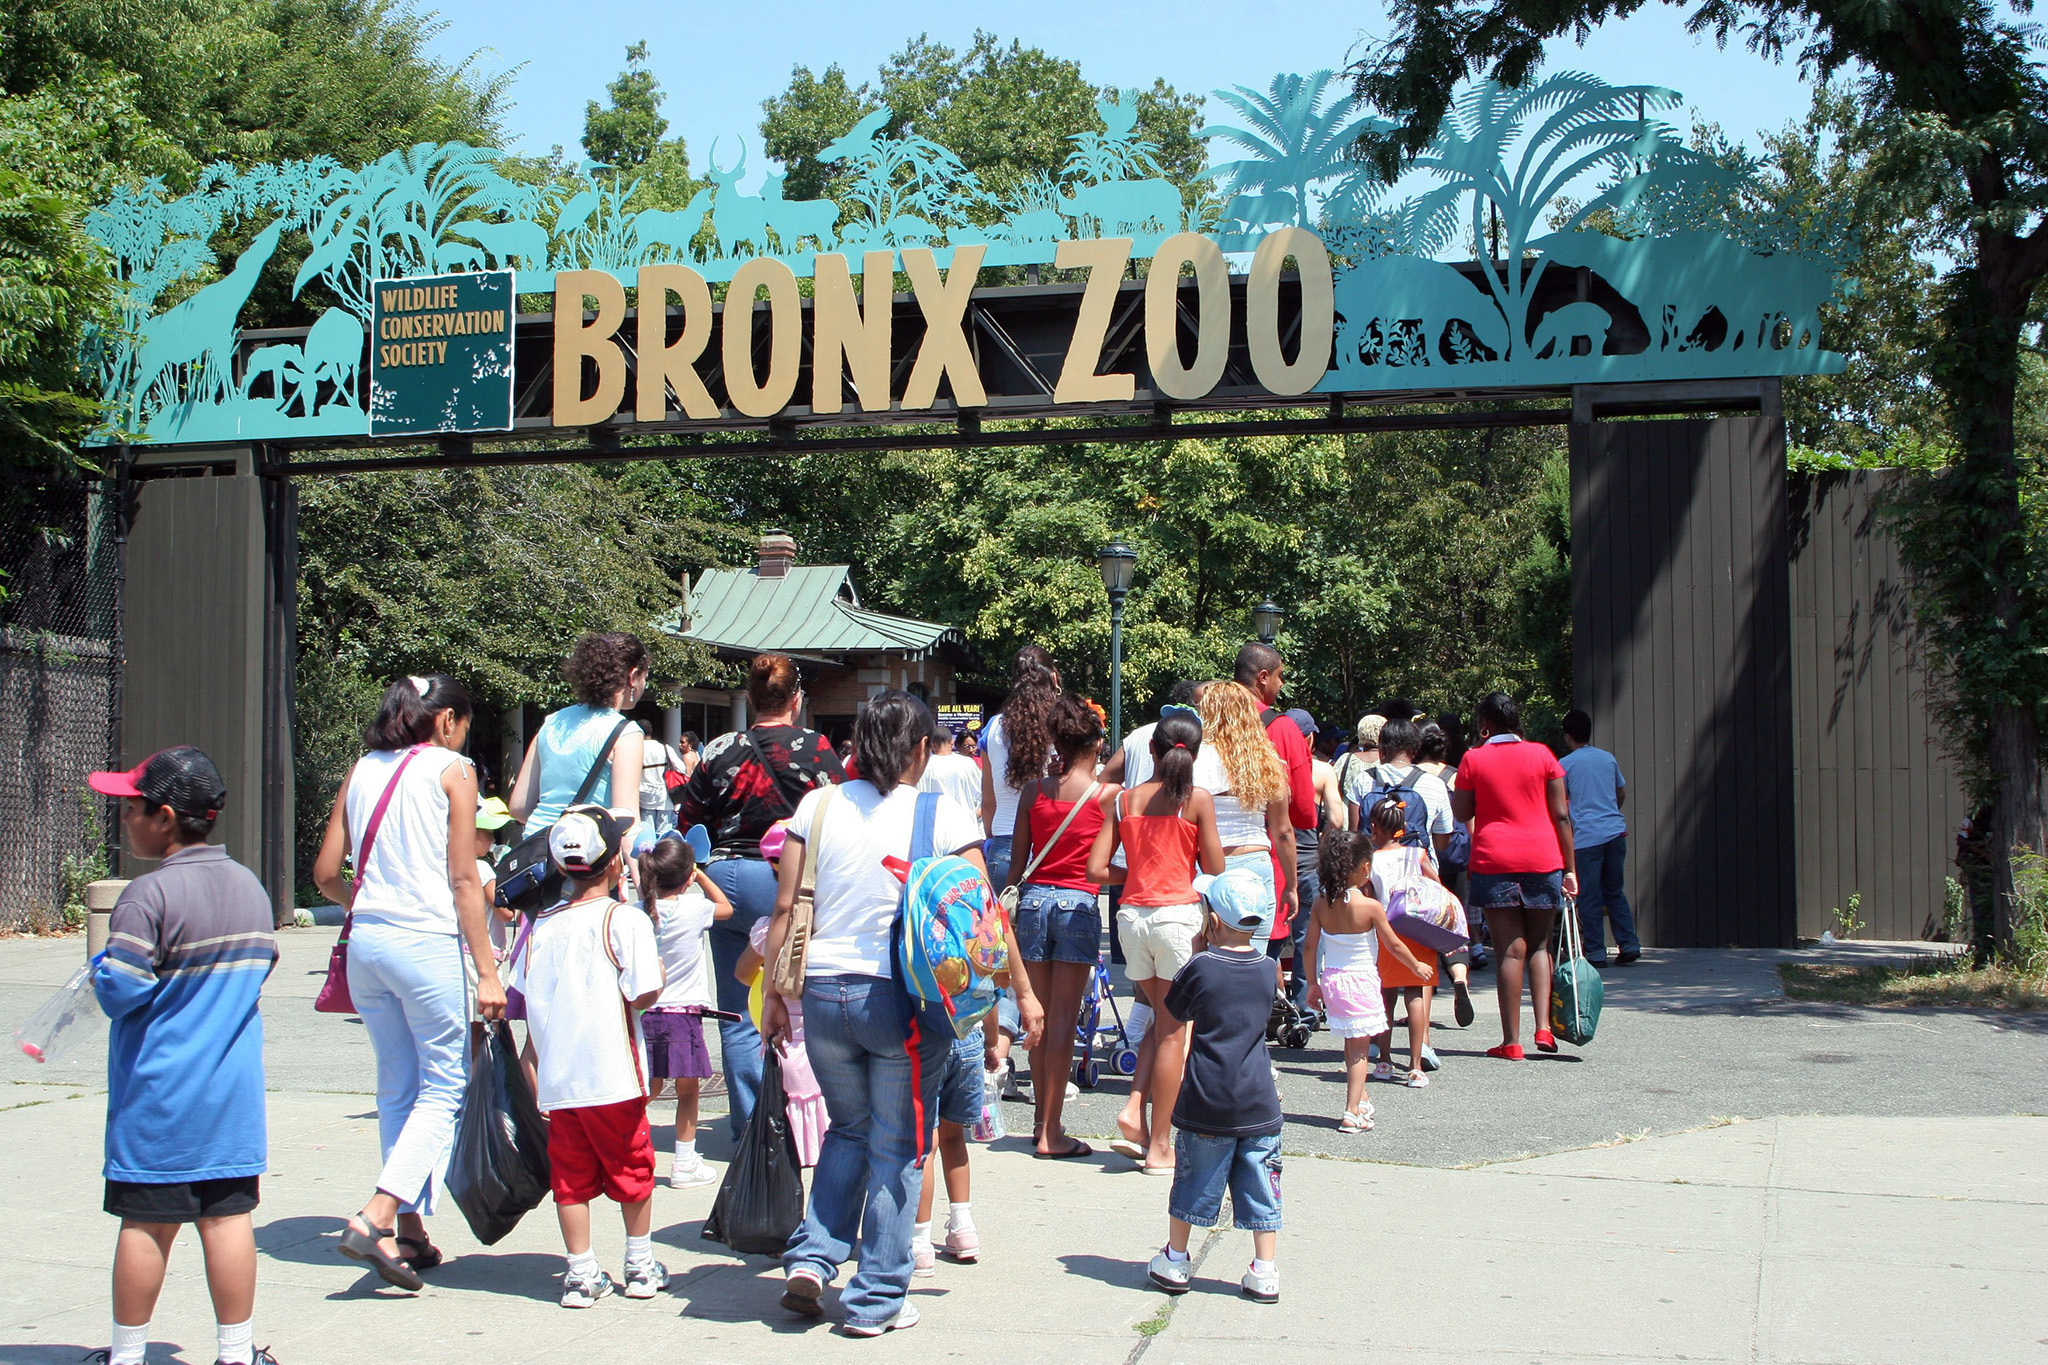 Bronx zoo wildlife conservation society bronx ny for Things to do in nyc during winter